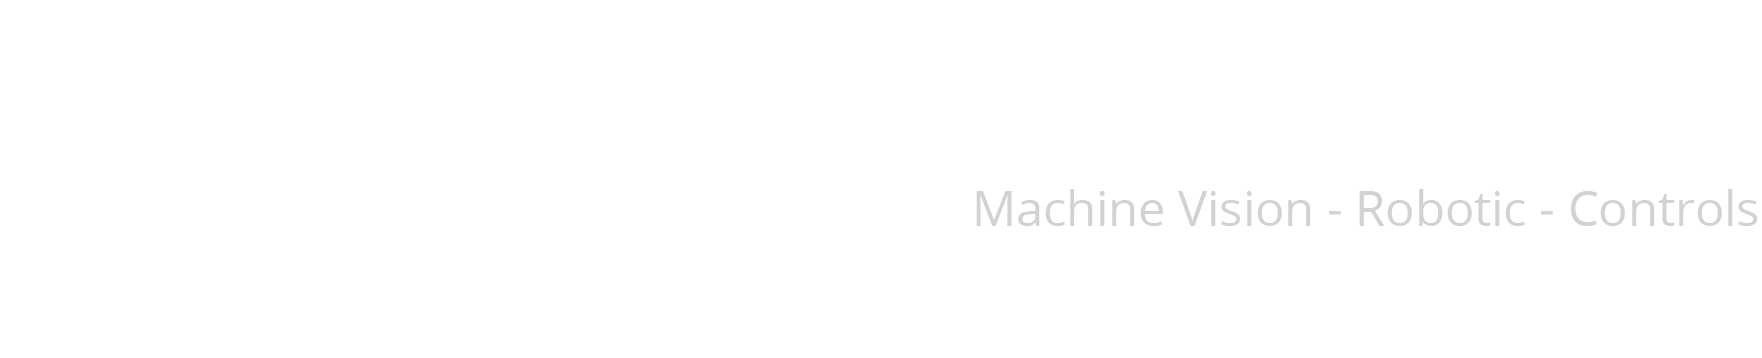 Eagle Vision and Automation